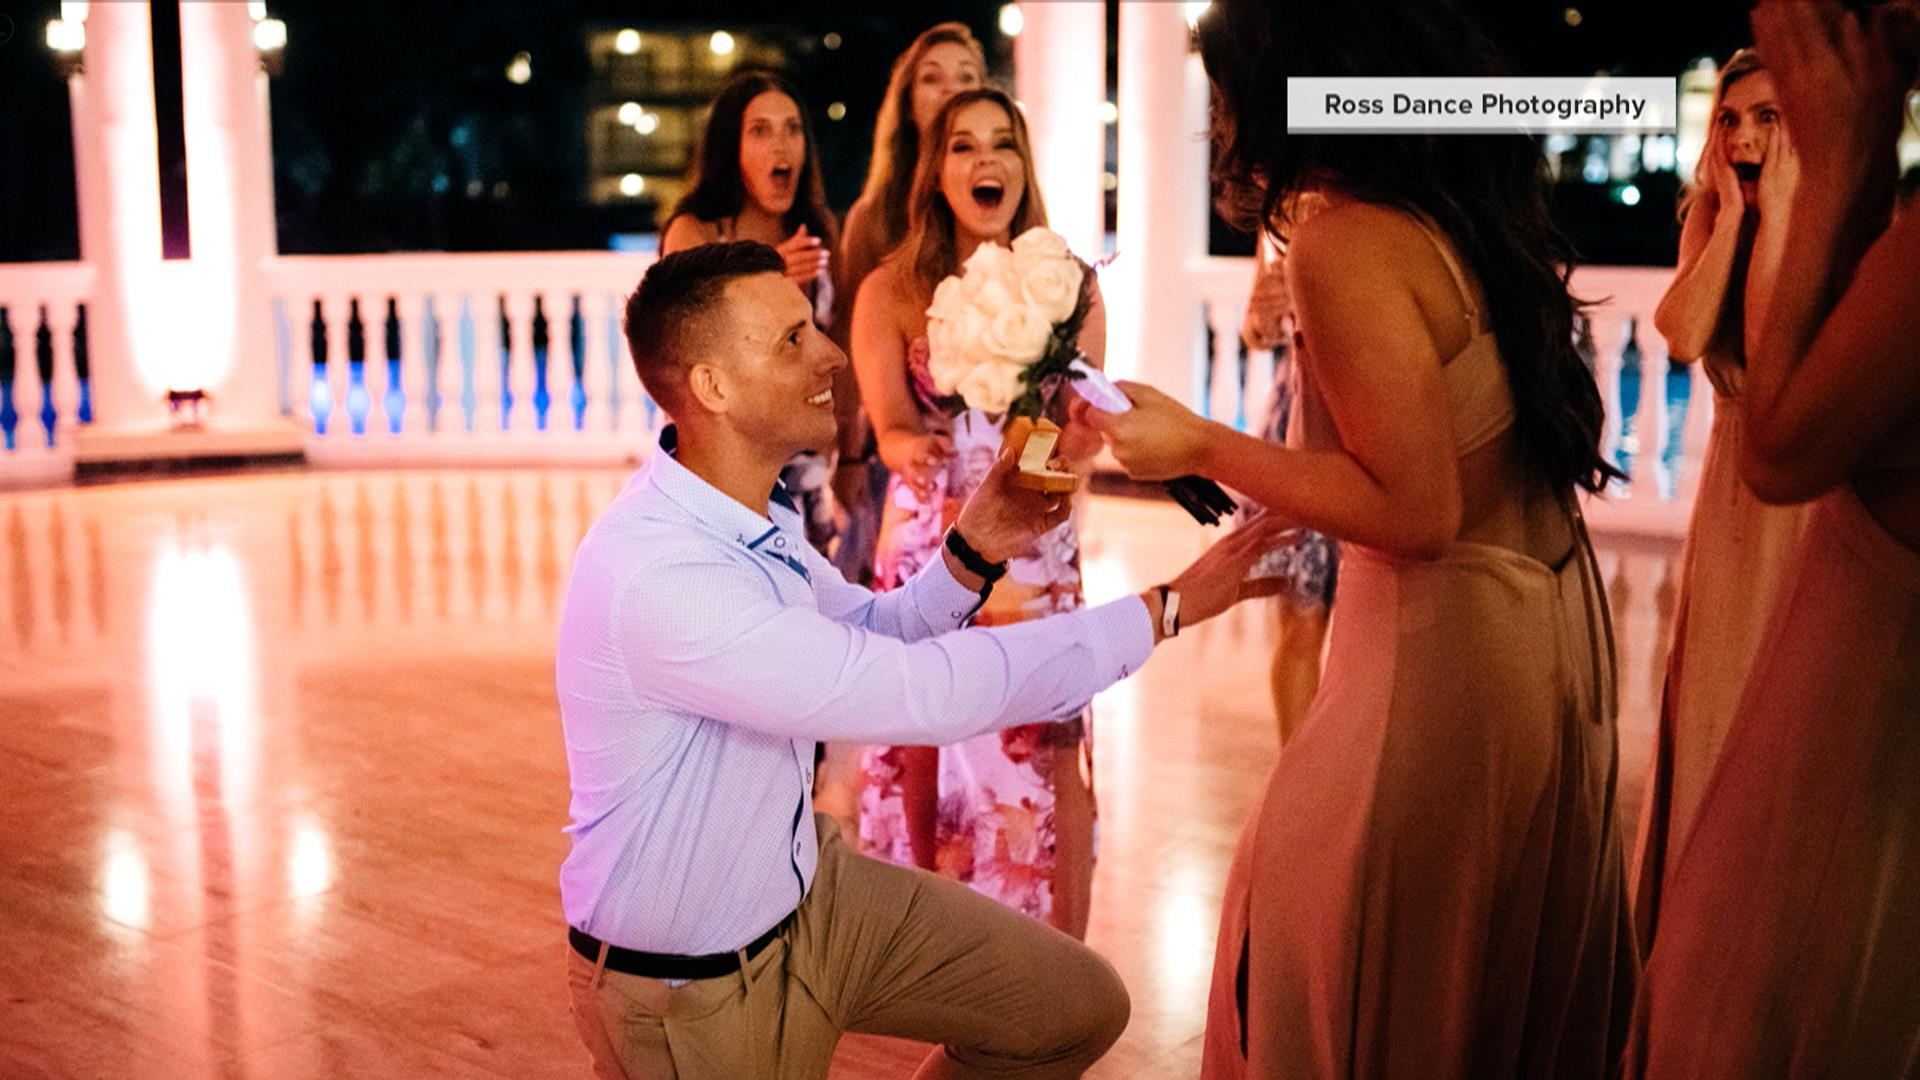 This Bride Arranged Her Friends Surprise Proposal At Own Wedding